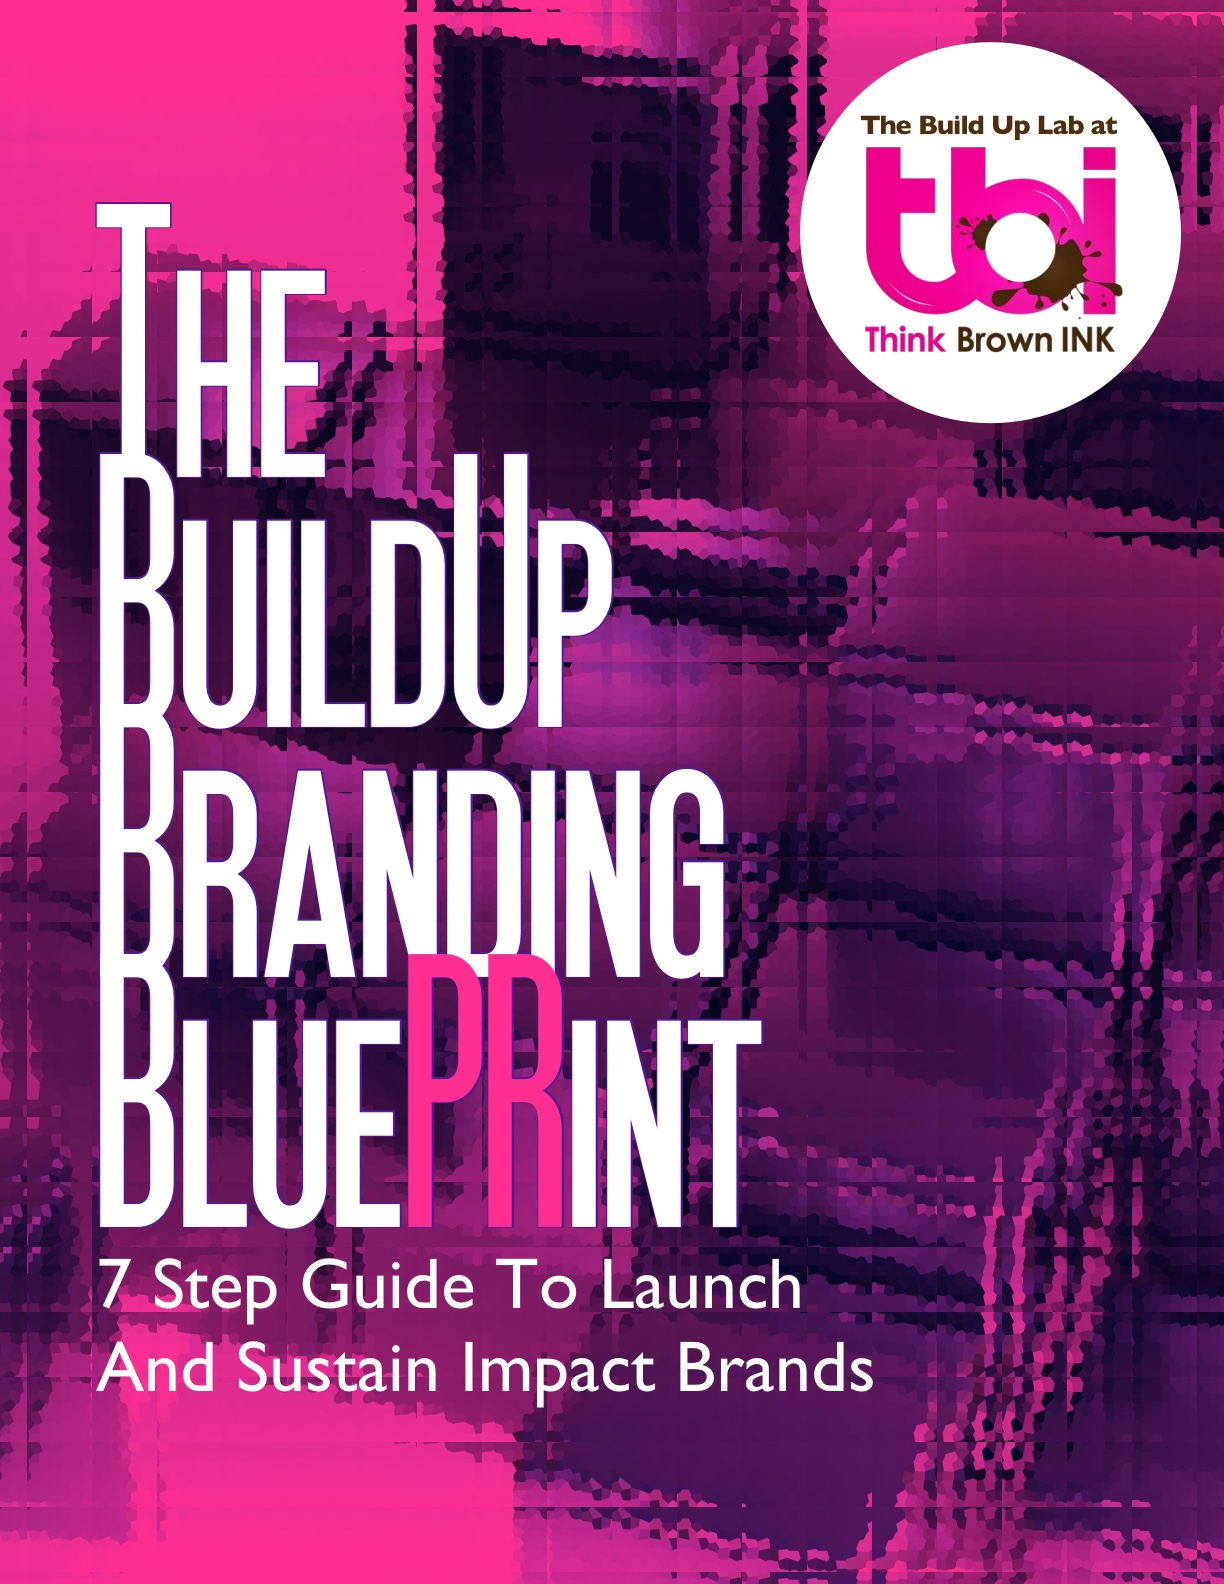 Our new handbook teaches professionals and entrepreneurs how to build their brands and strengthen their communities.